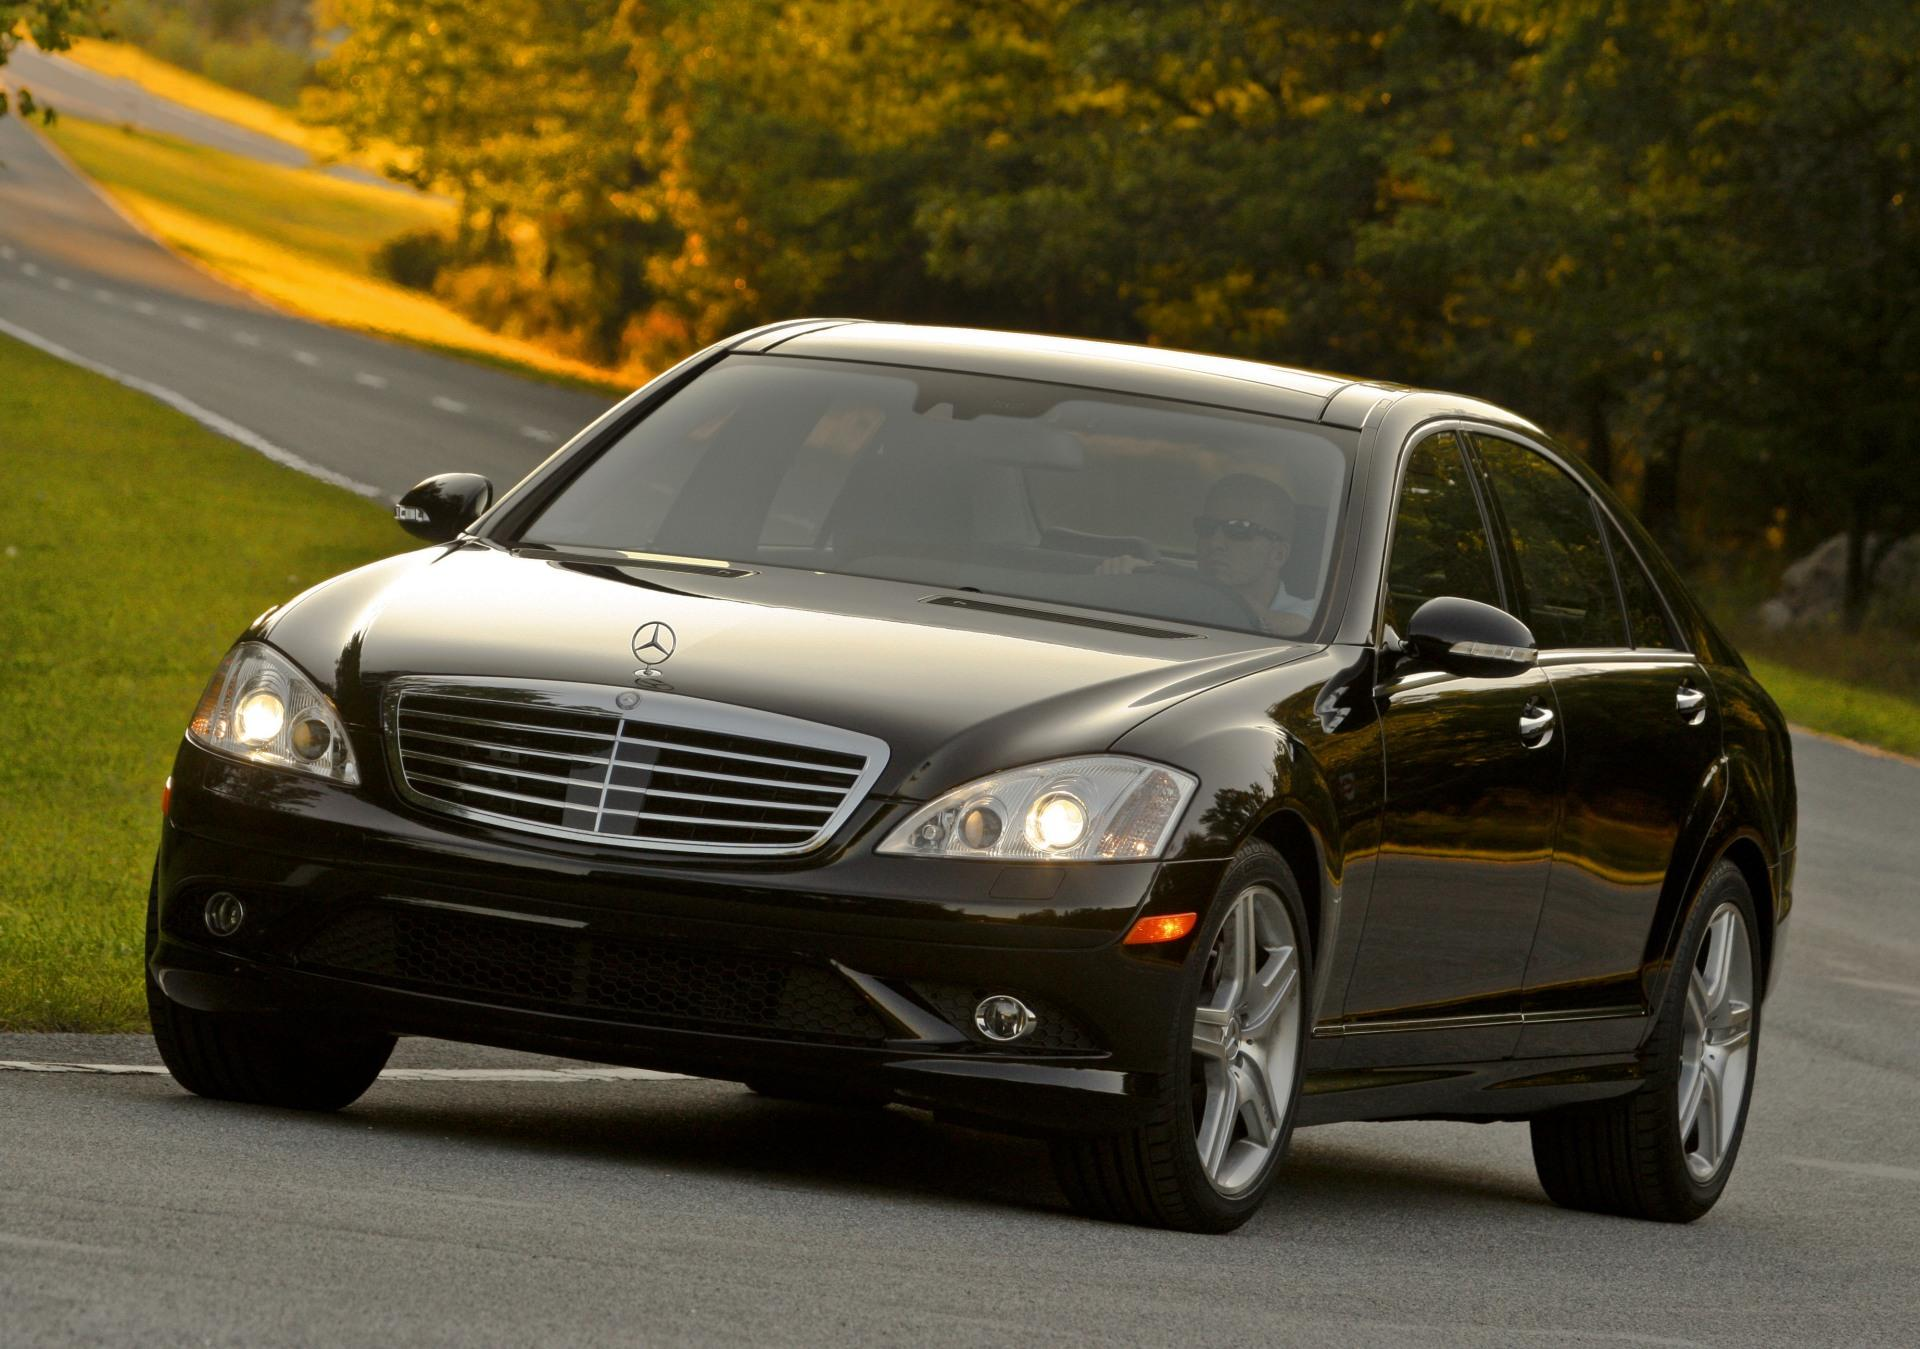 2009 mercedes benz s class images photo mercedes benz s for 2009 mercedes benz s550 price